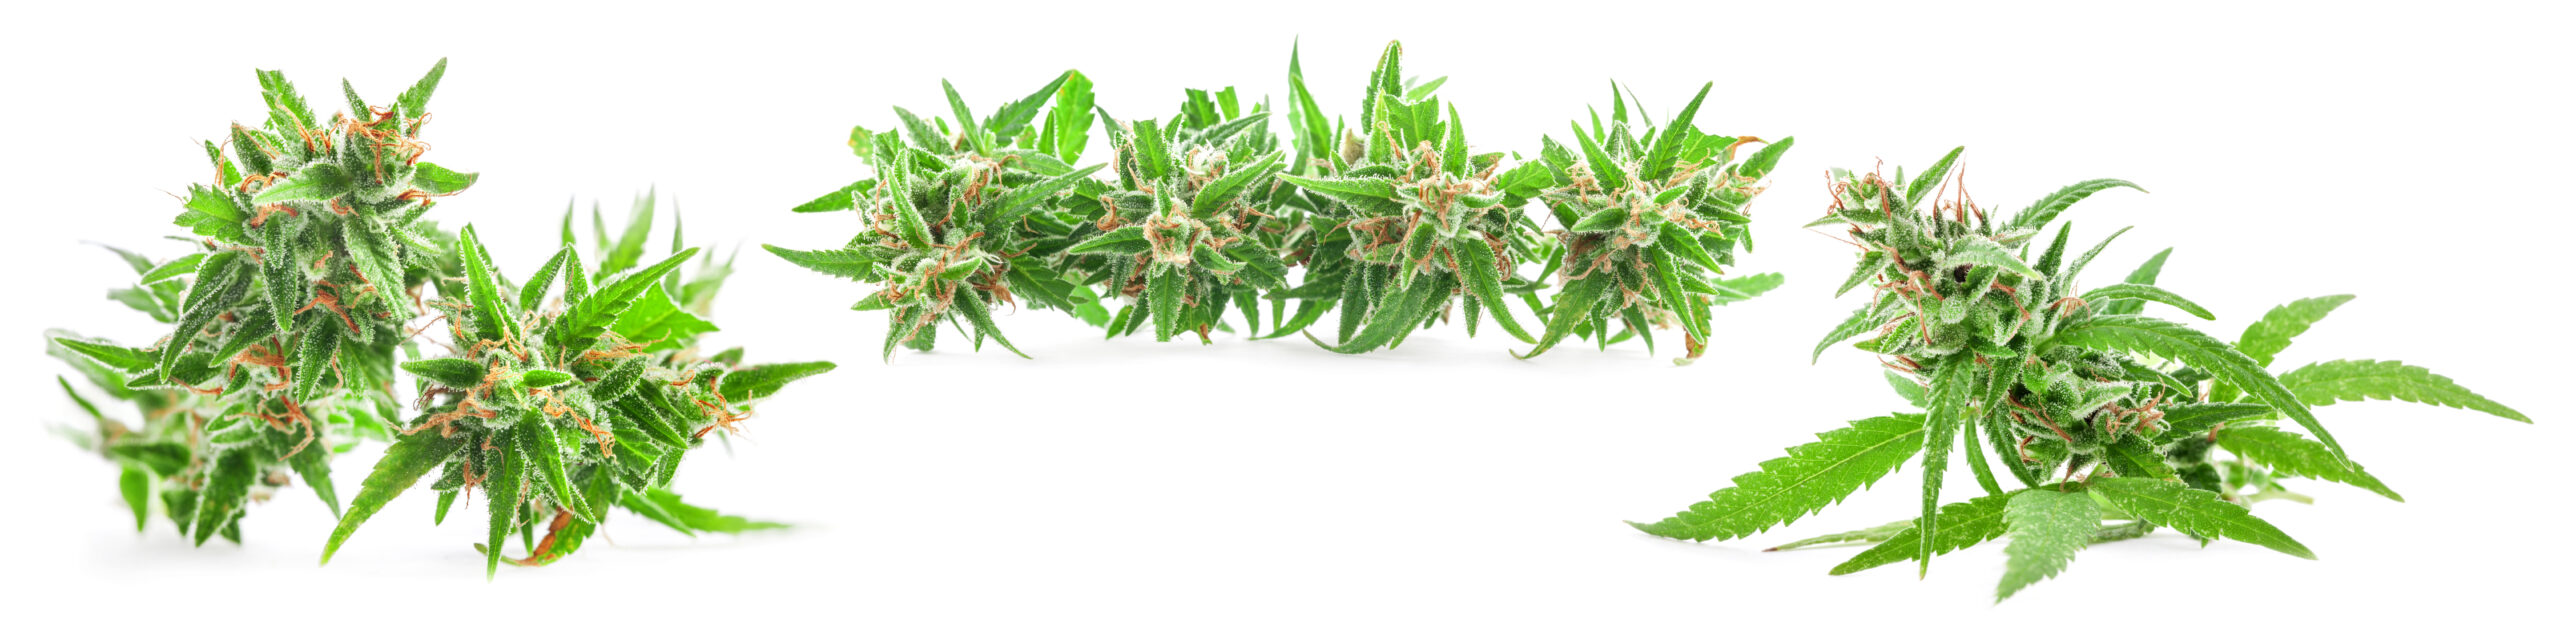 Fresh Medical marijuana isolated on white background. Therapeutic and Medical cannabis